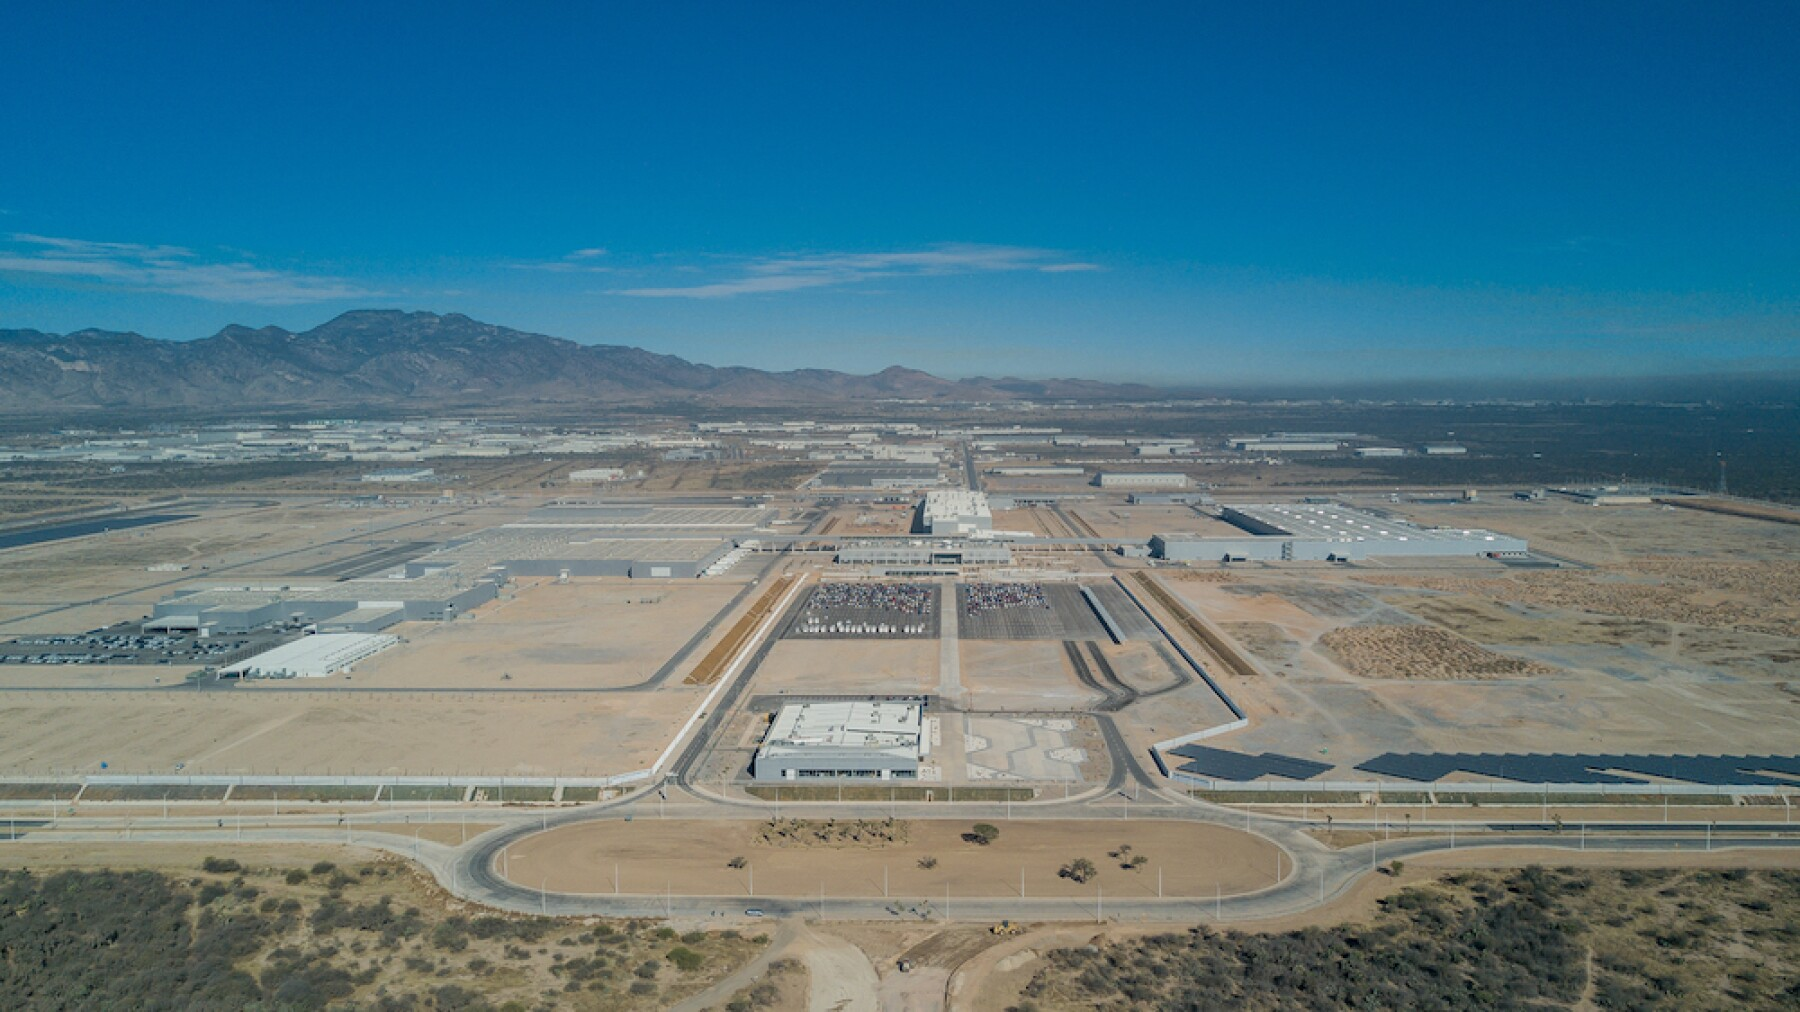 BMW_Group_Plant_SLP_Aerial_01.JPG